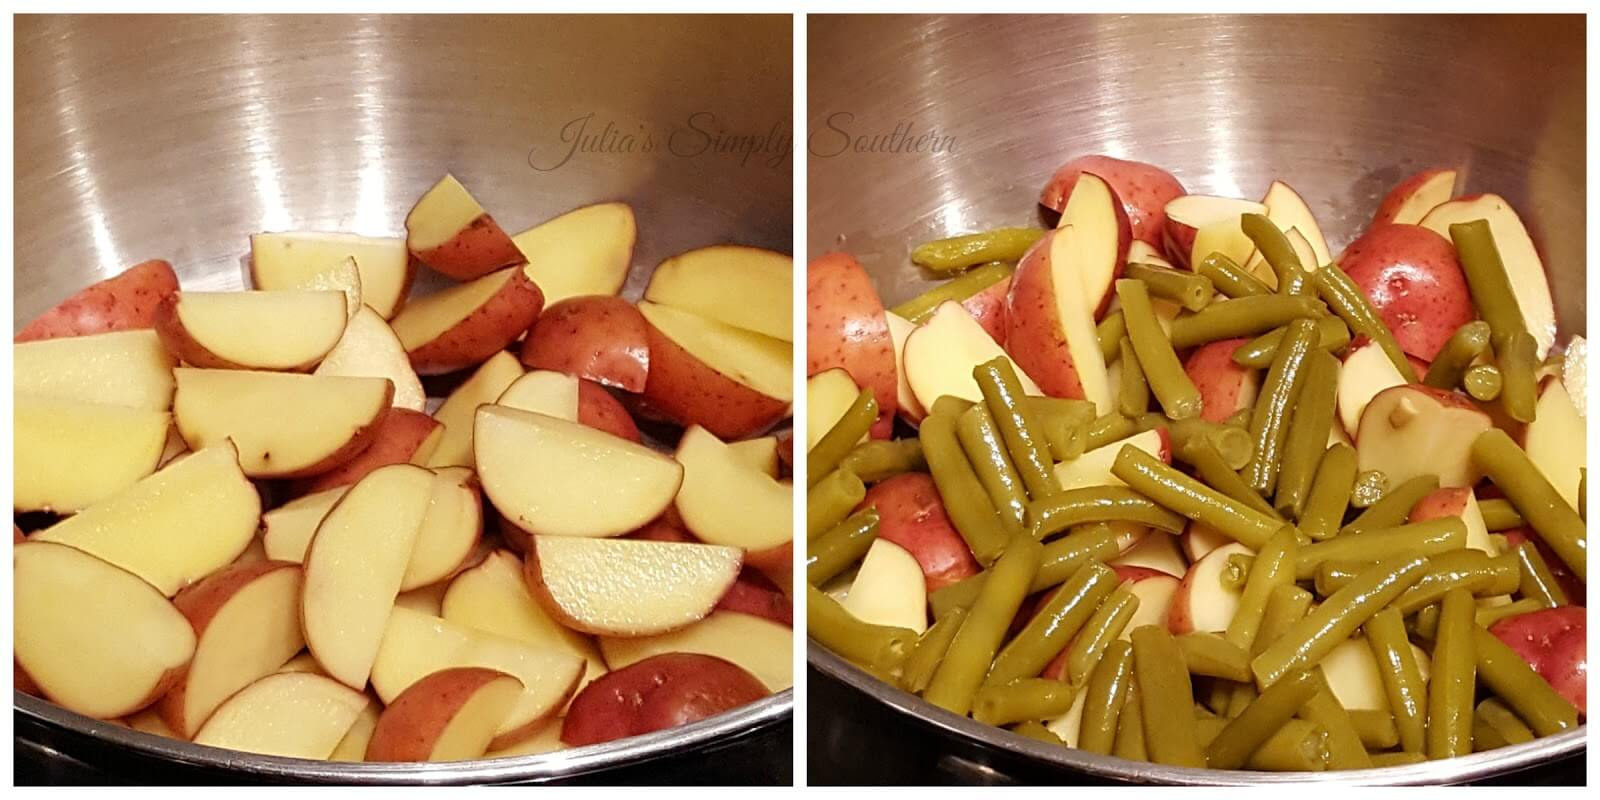 Quick and easy side dish recipe with green beans and baby red potatoes